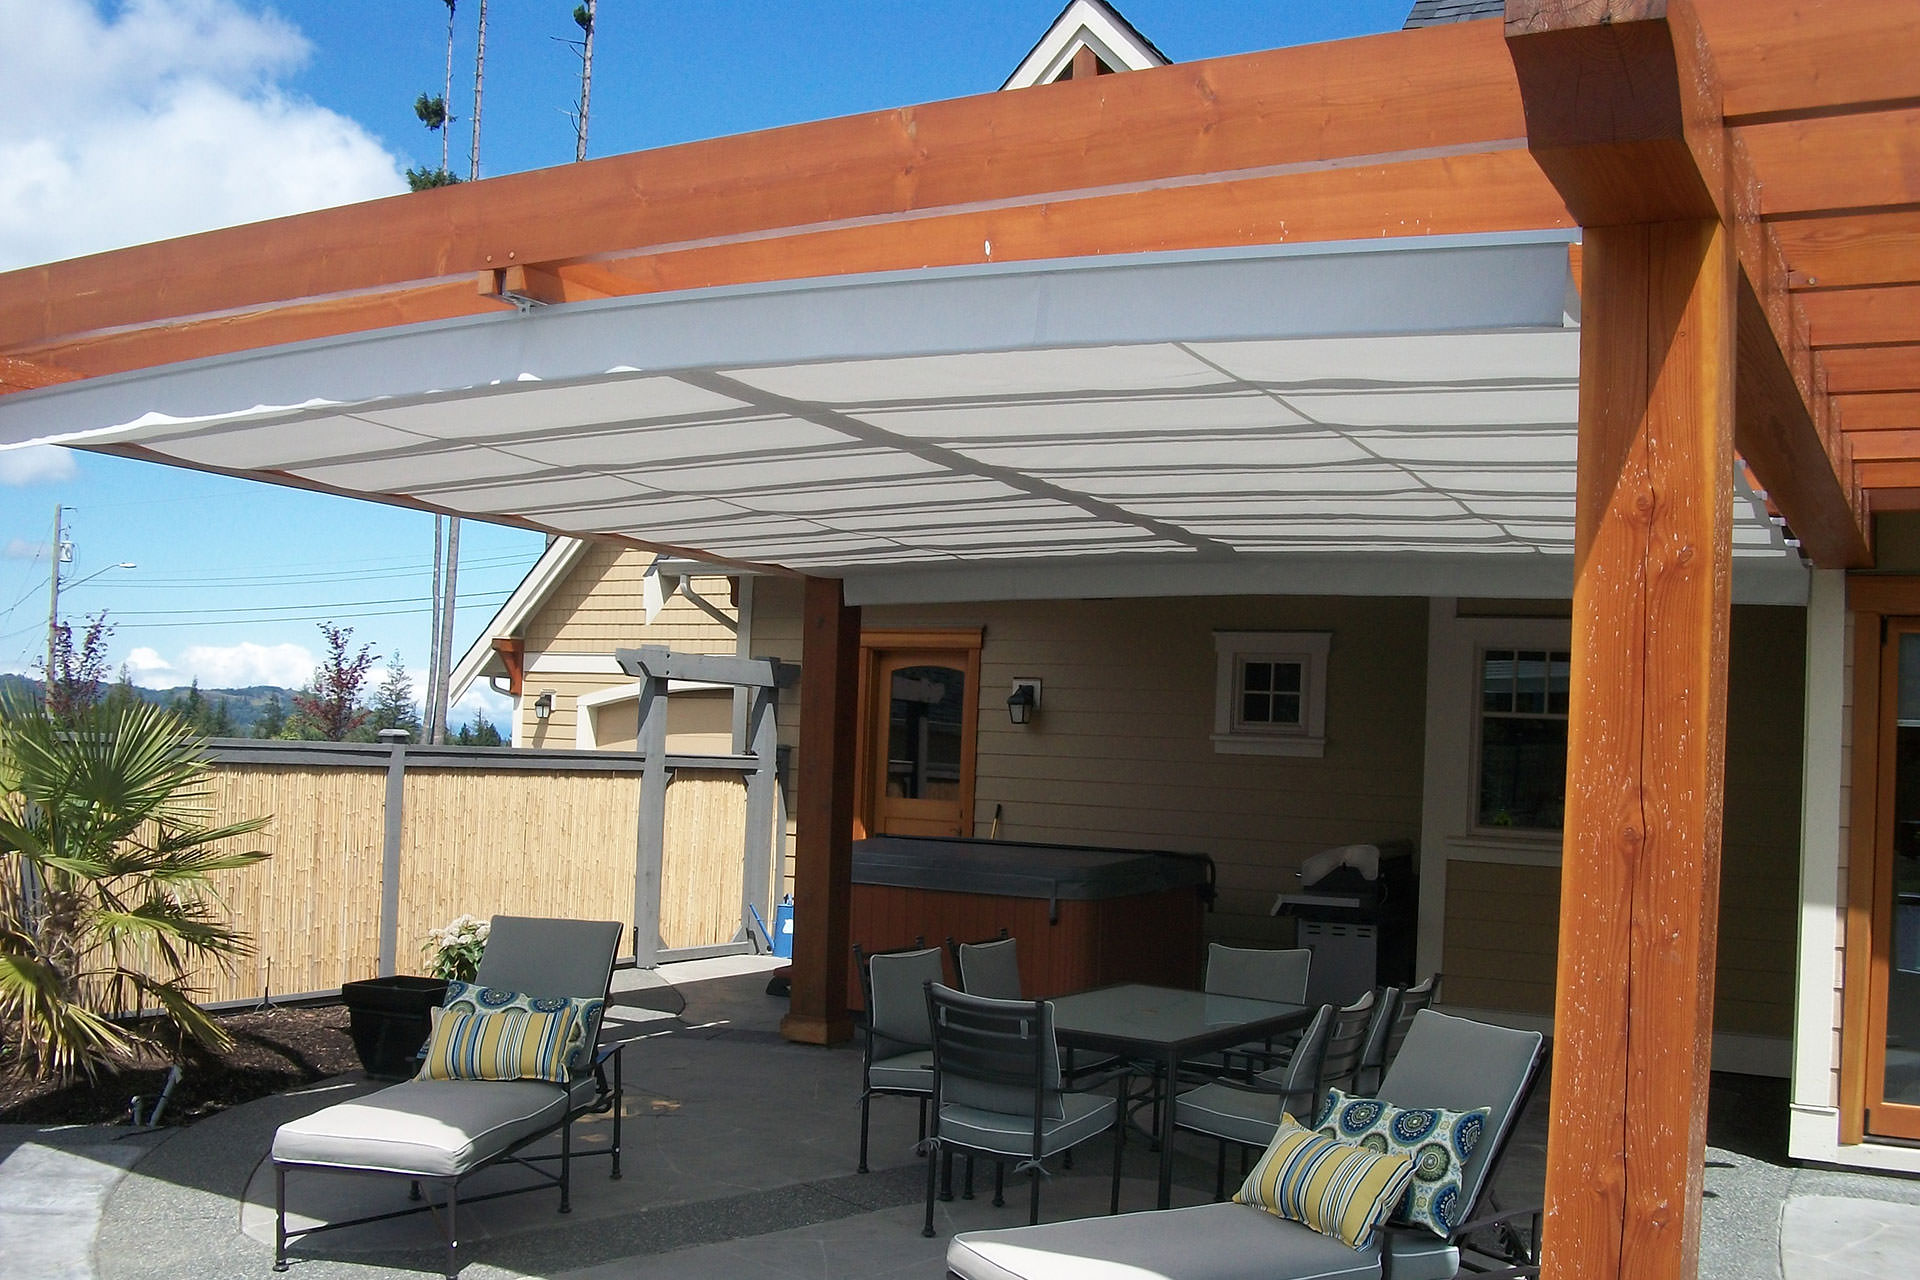 Staying On Track Retractable Canopy Track Systems